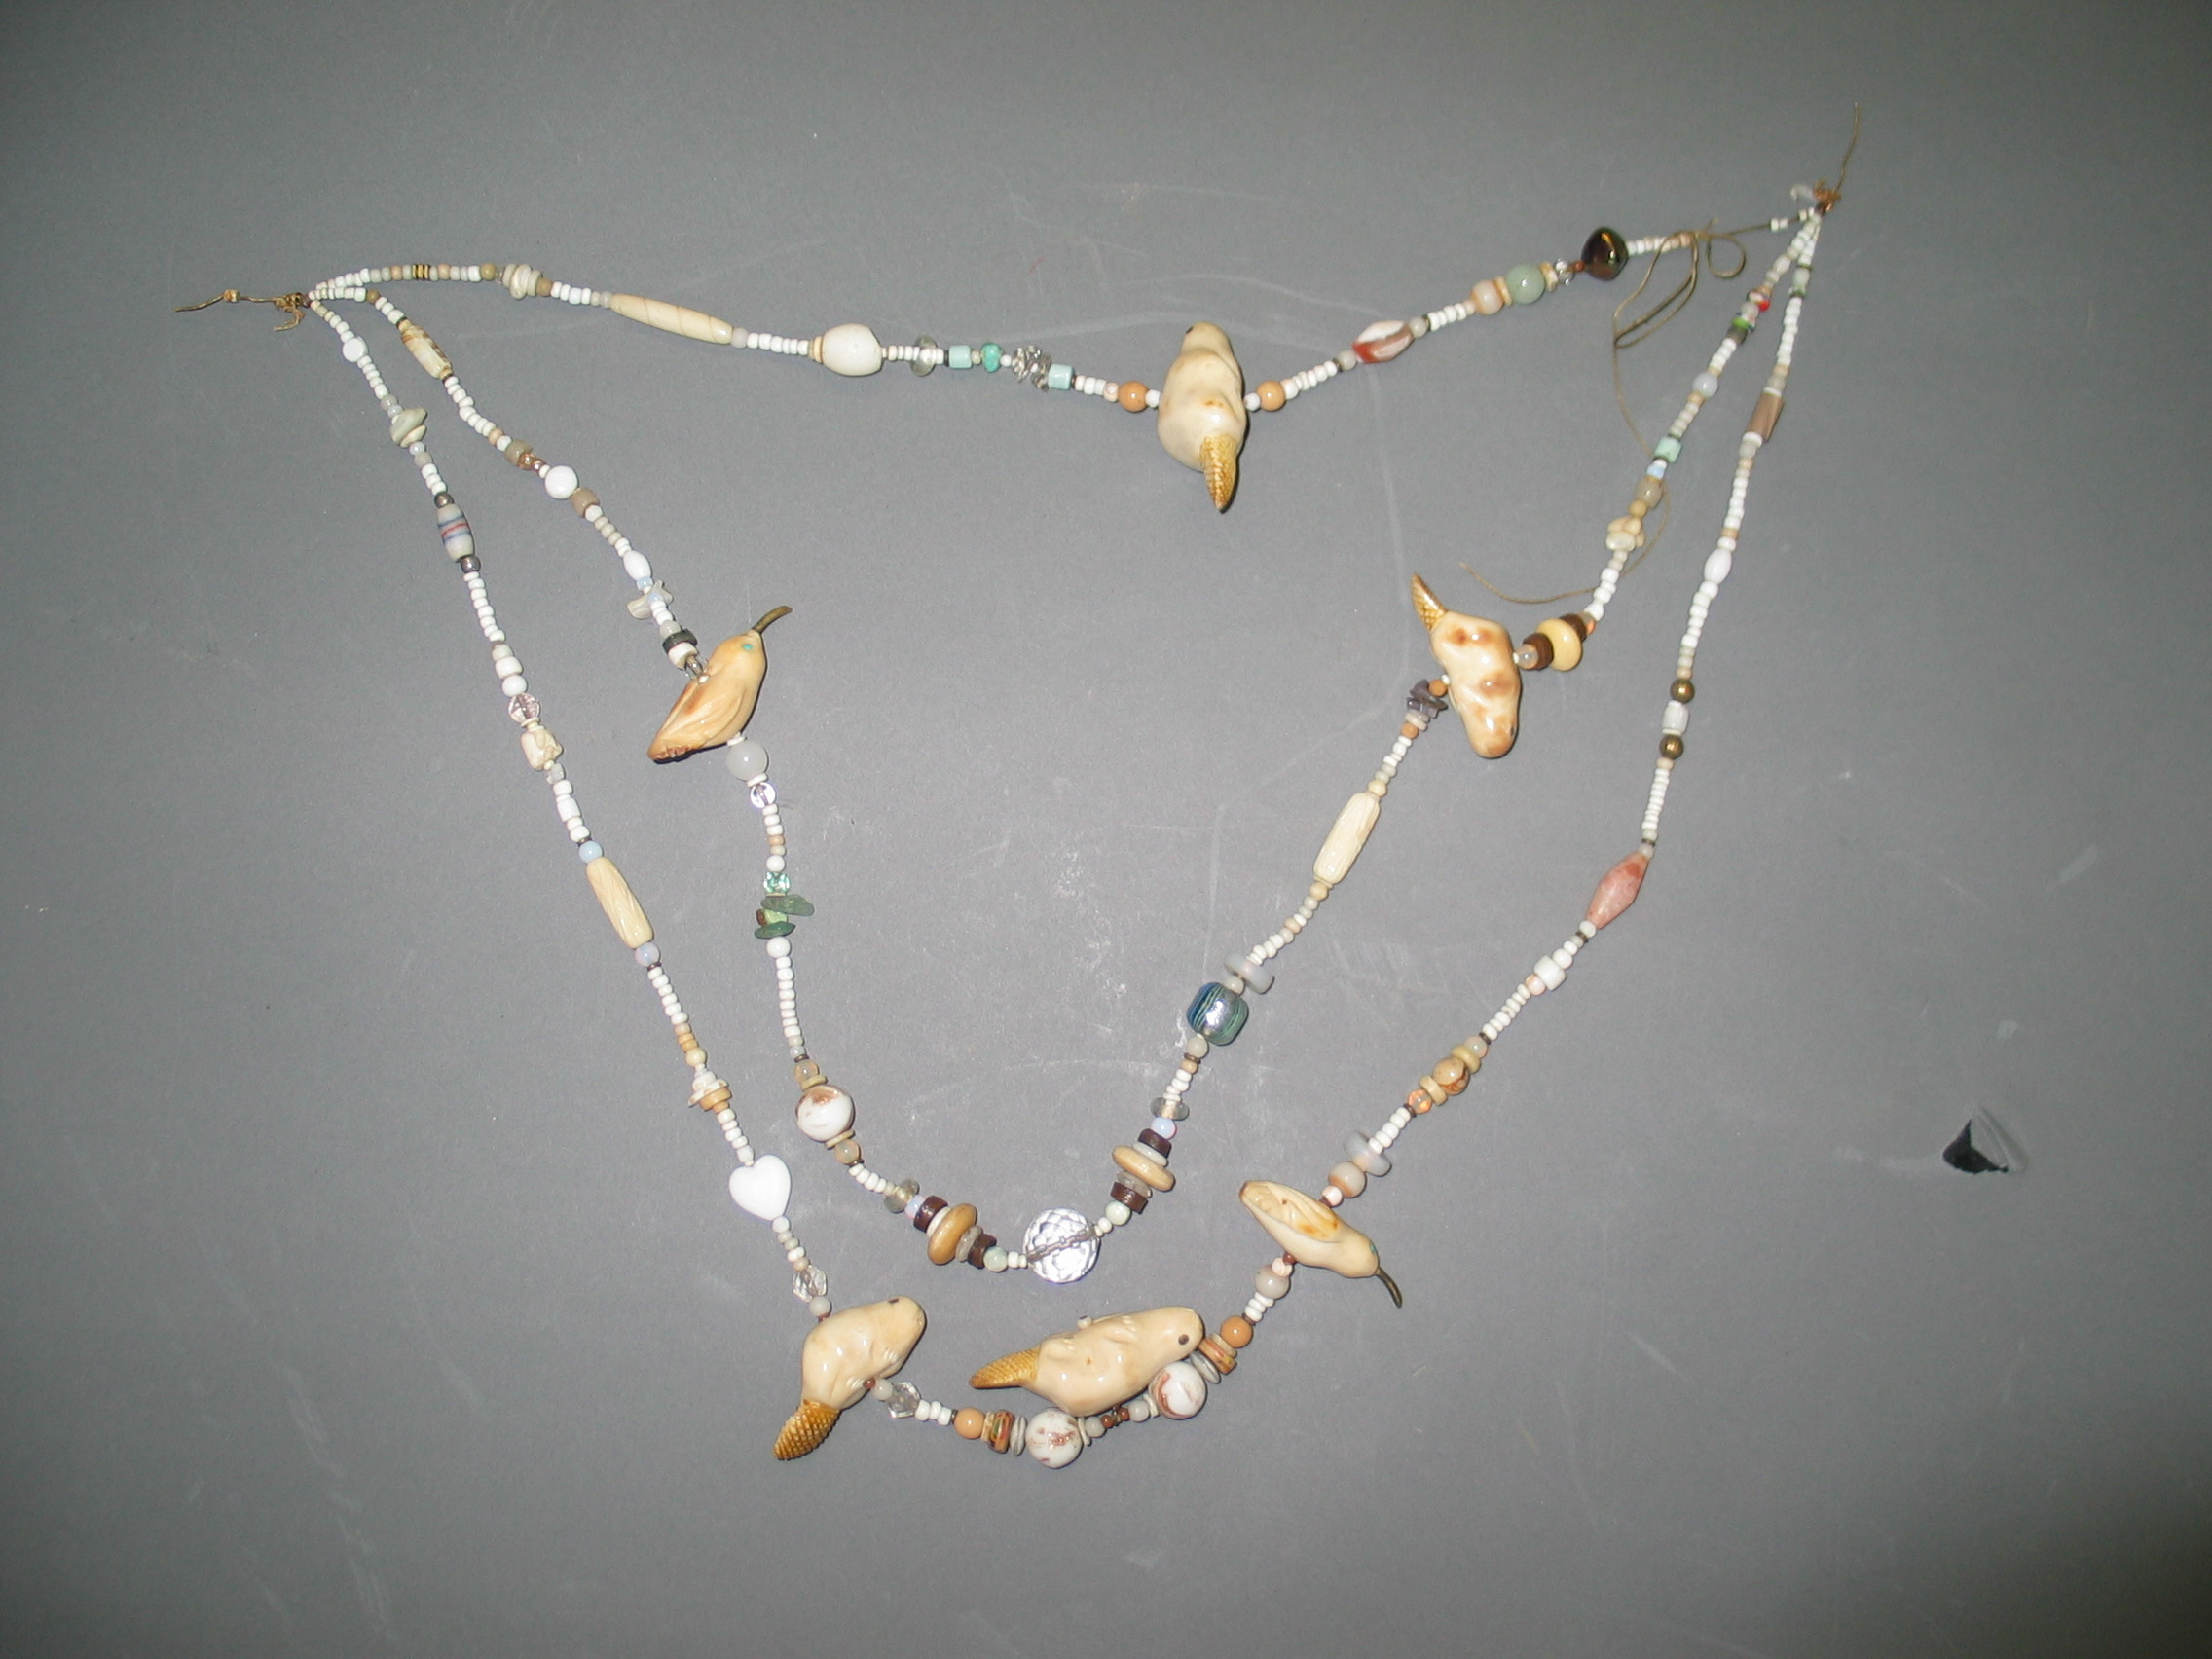 Native American Neckless. Jewelry Repair and Restoration